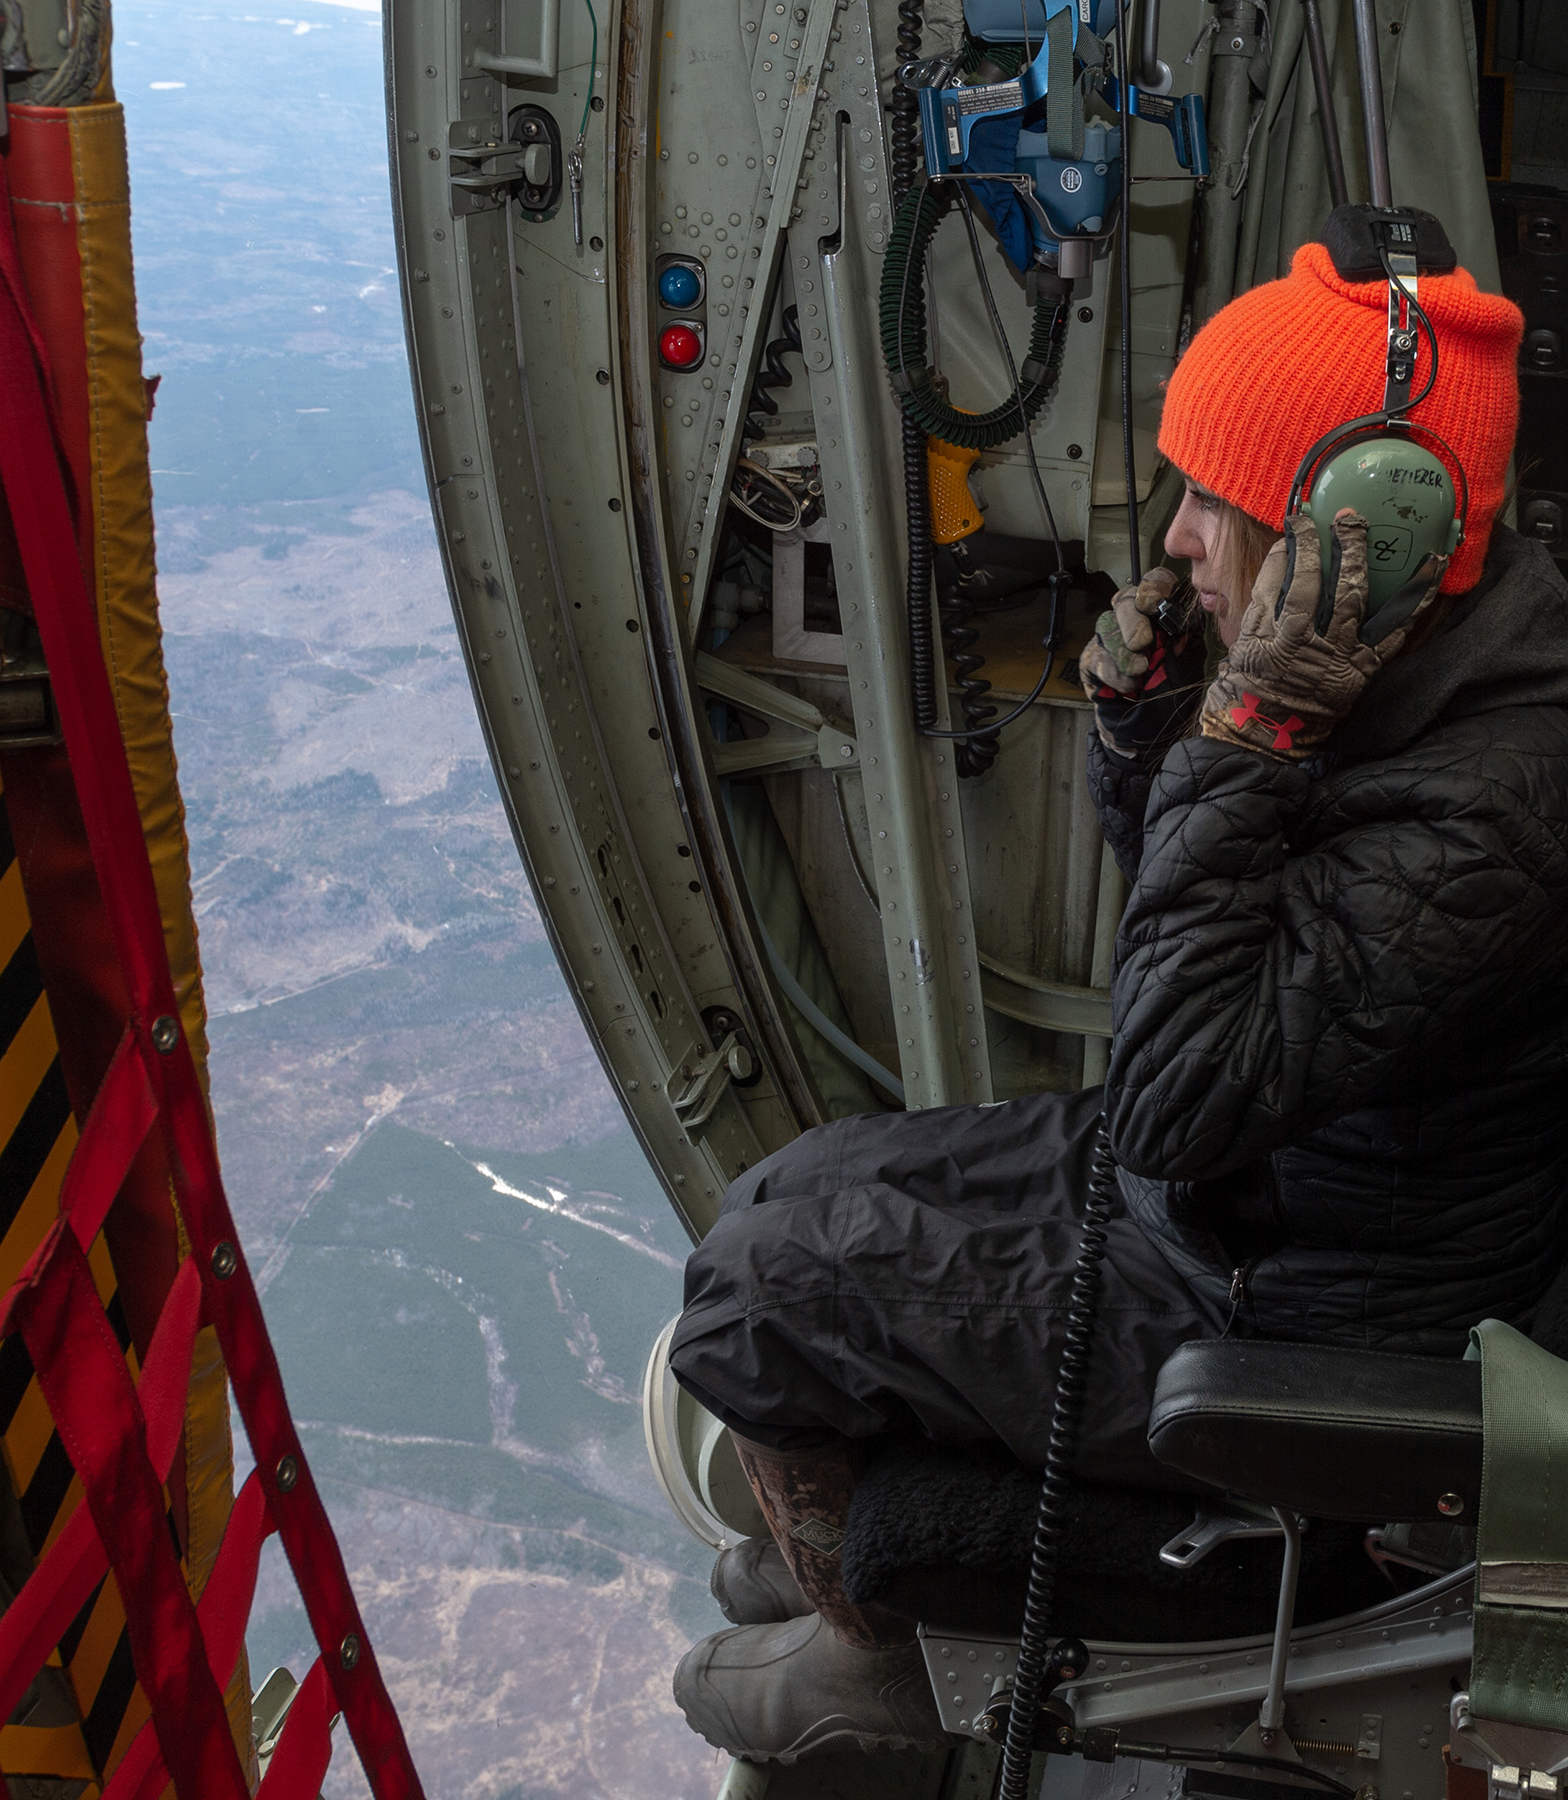 Civil Air Search and Rescue Association (CASARA) member Bobbi Fisher searches for a simulated crash site from a CC-130 Hercules aircraft on May 8, 2019, during Chinthex 2019, held near Thunder Bay, Ontario. PHOTO: Corporal Bryce Cooper, WG2019-0191-101